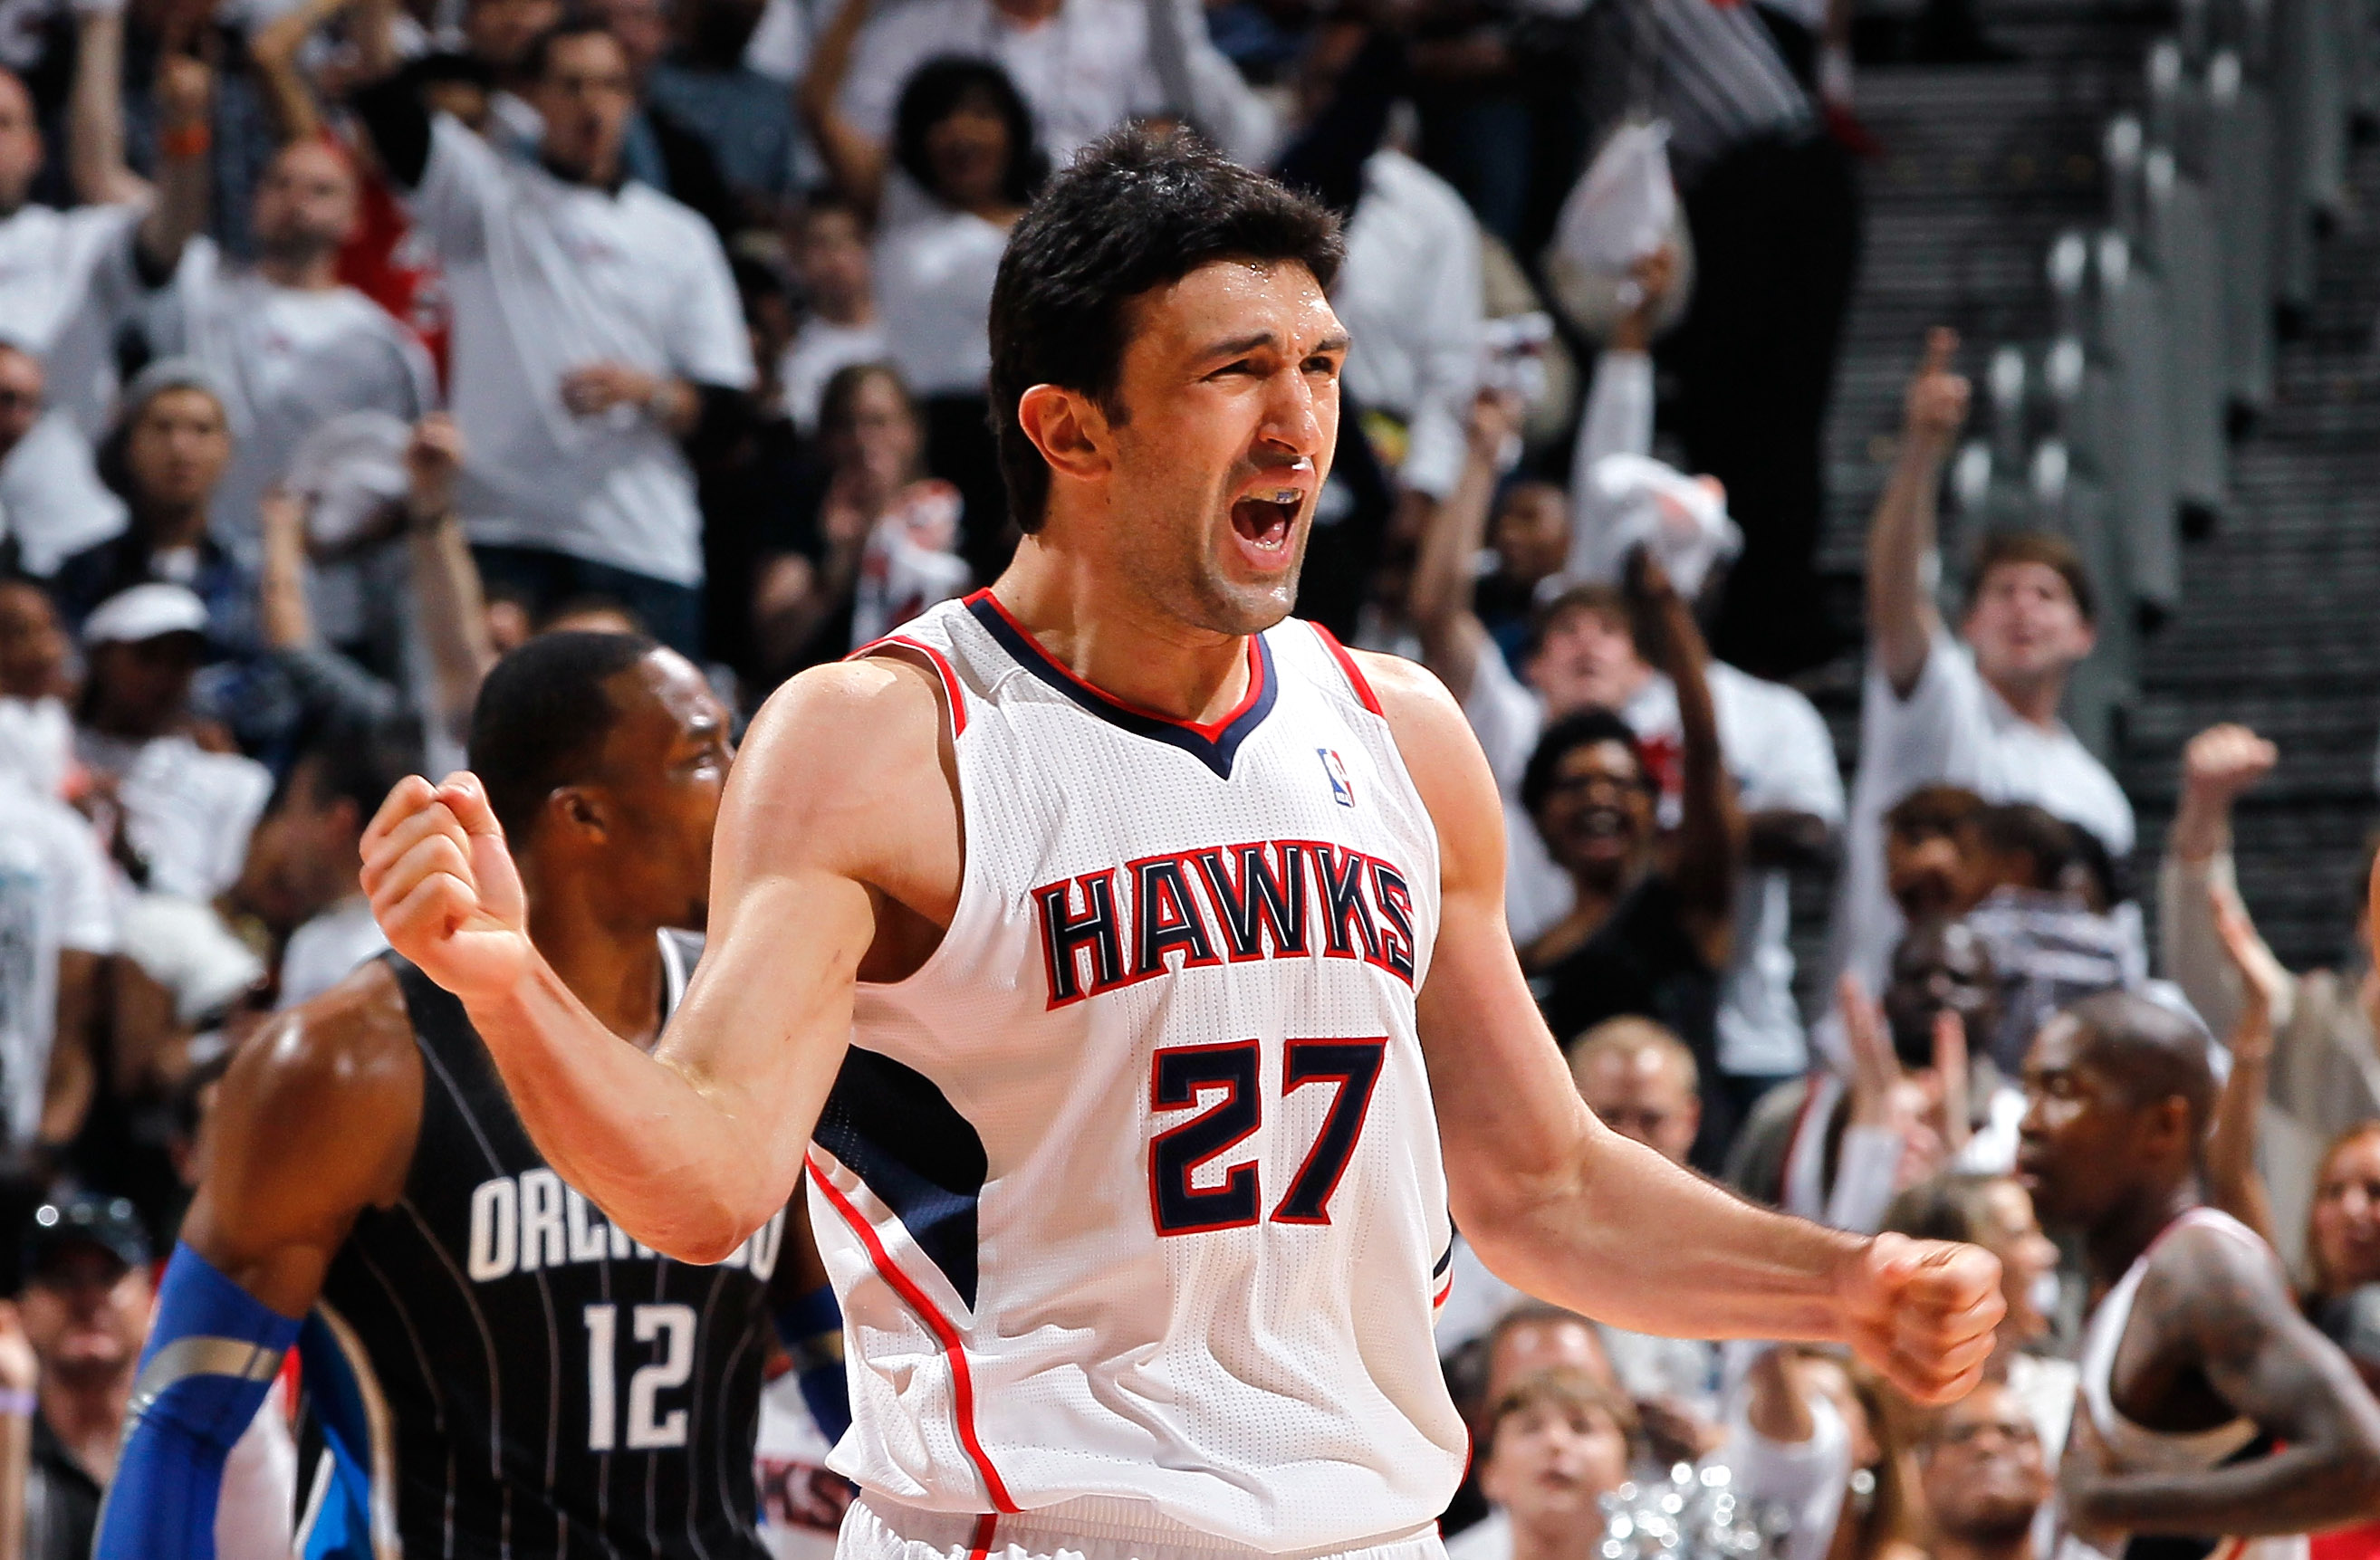 ATLANTA, GA - APRIL 28:  Zaza Pachulia #27 of the Atlanta Hawks reacts after a basket against the Orlando Magic due to a turnover he forced during Game Six of the Eastern Conference Quarterfinals in the 2011 NBA Playoffs at Philips Arena on April 28, 2011